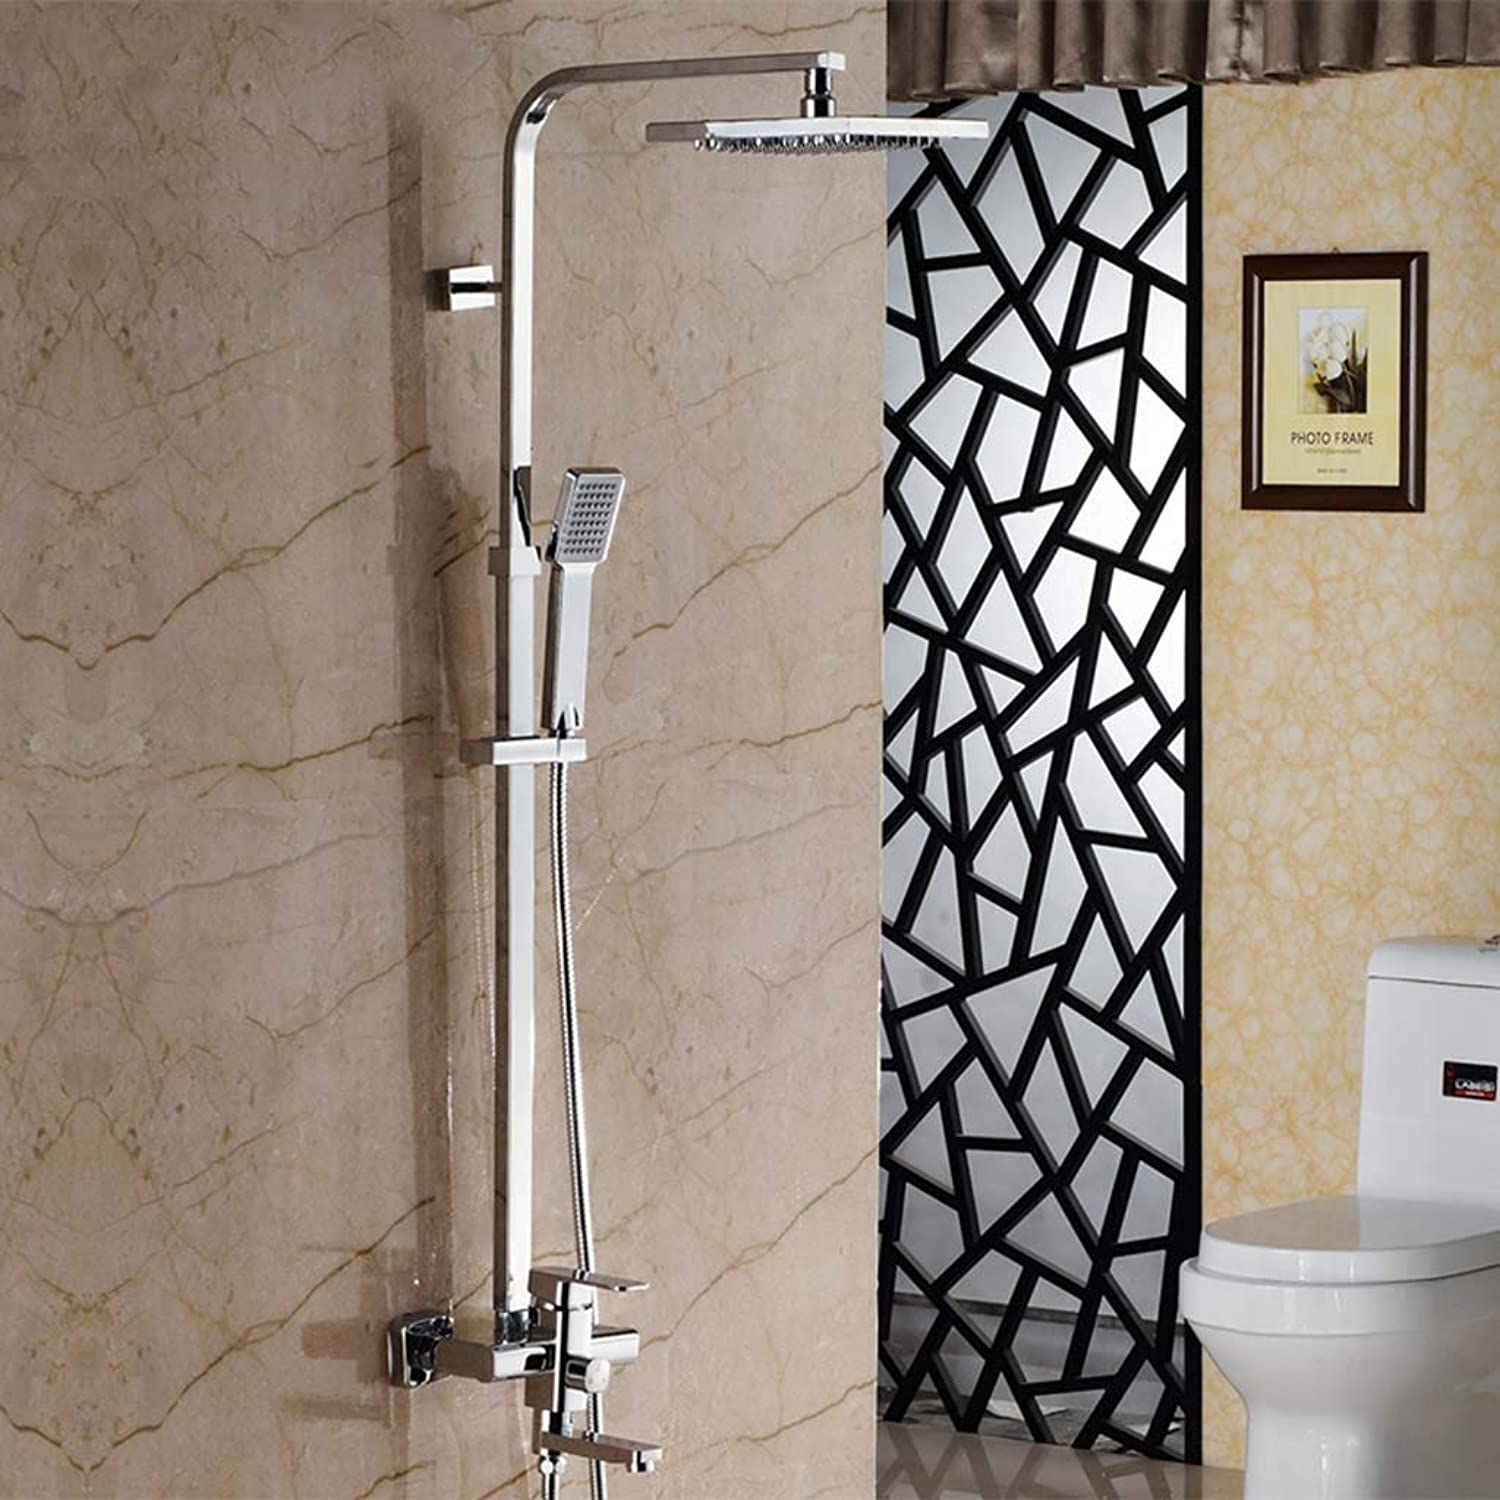 Full copper shower Faucet suit European style shower Hot and cold faucet Set shower Device